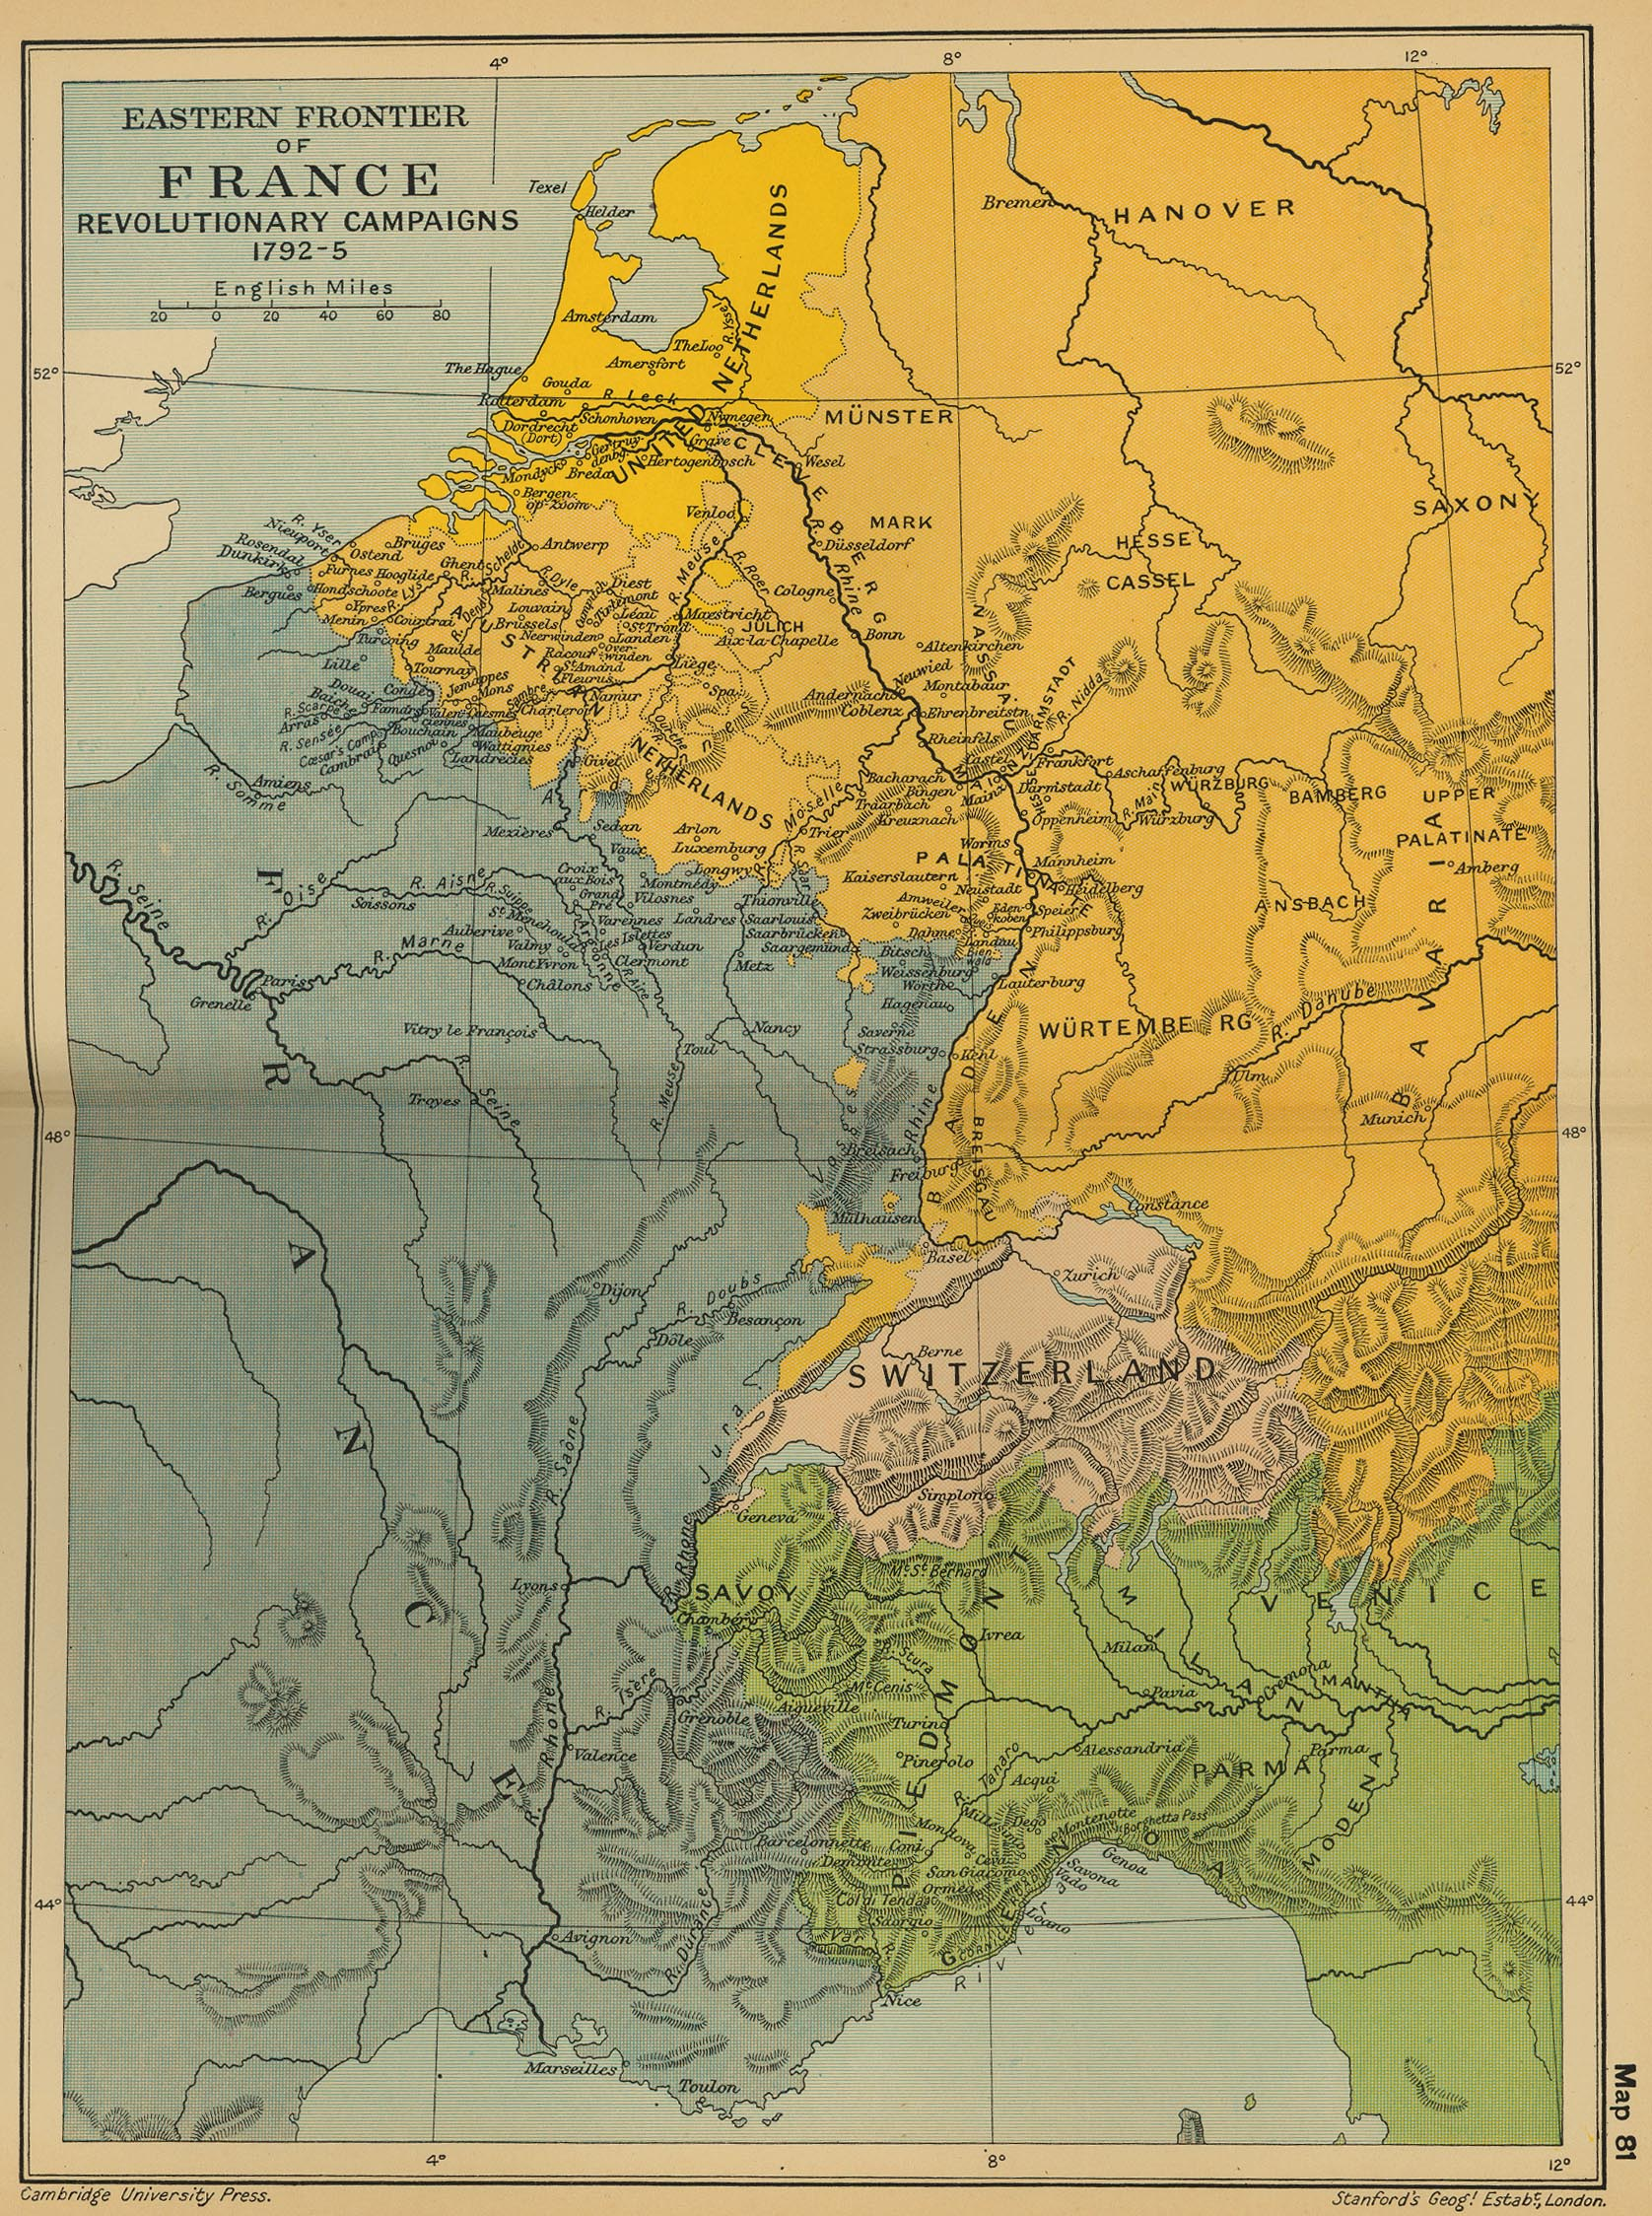 Map of Eastern France in 1792: Revolutionary Campaigns